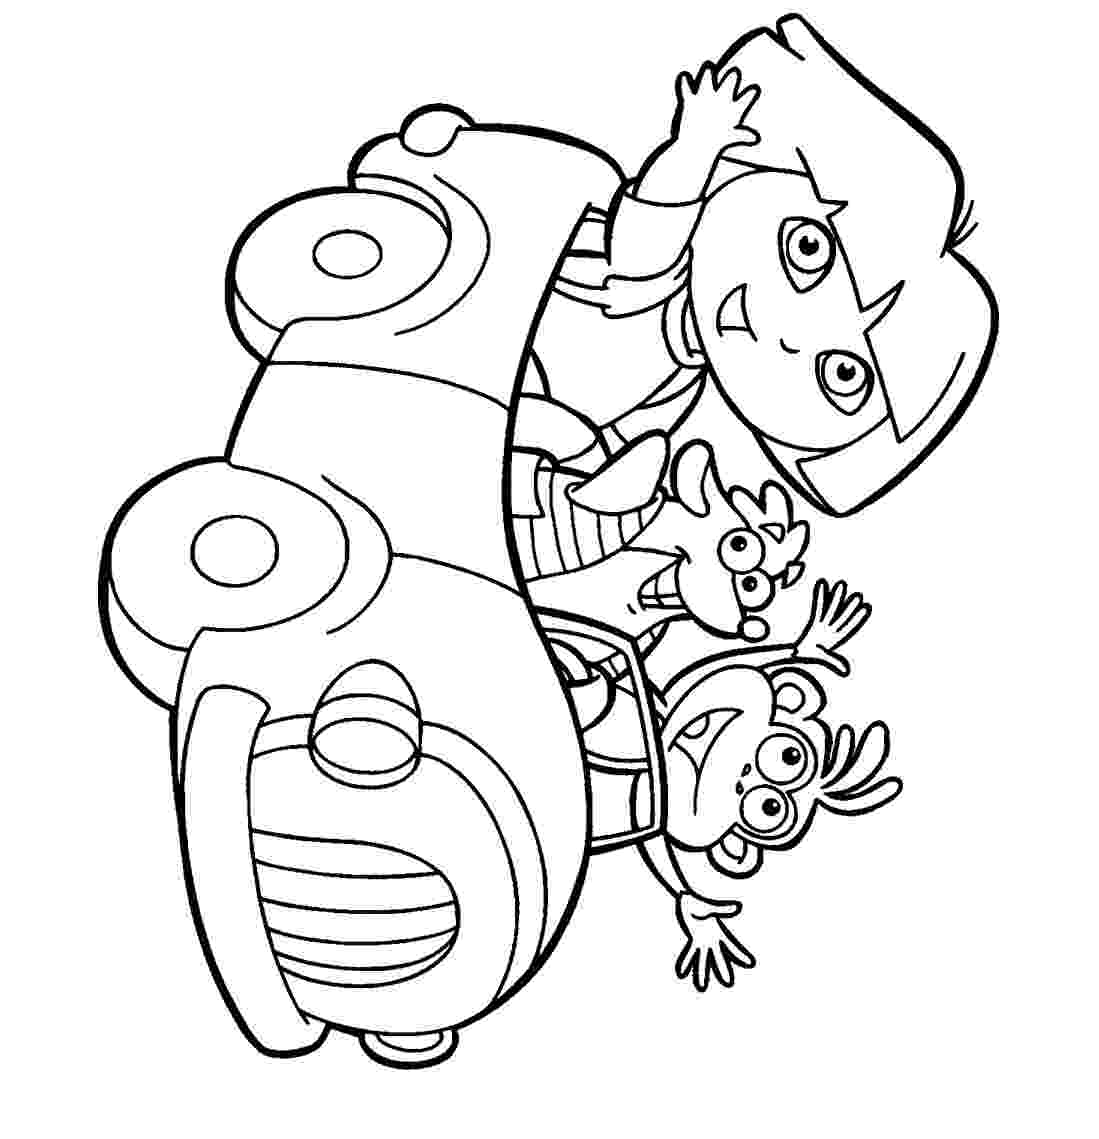 awesome coloring pages for kids coloring town kids pages coloring awesome for